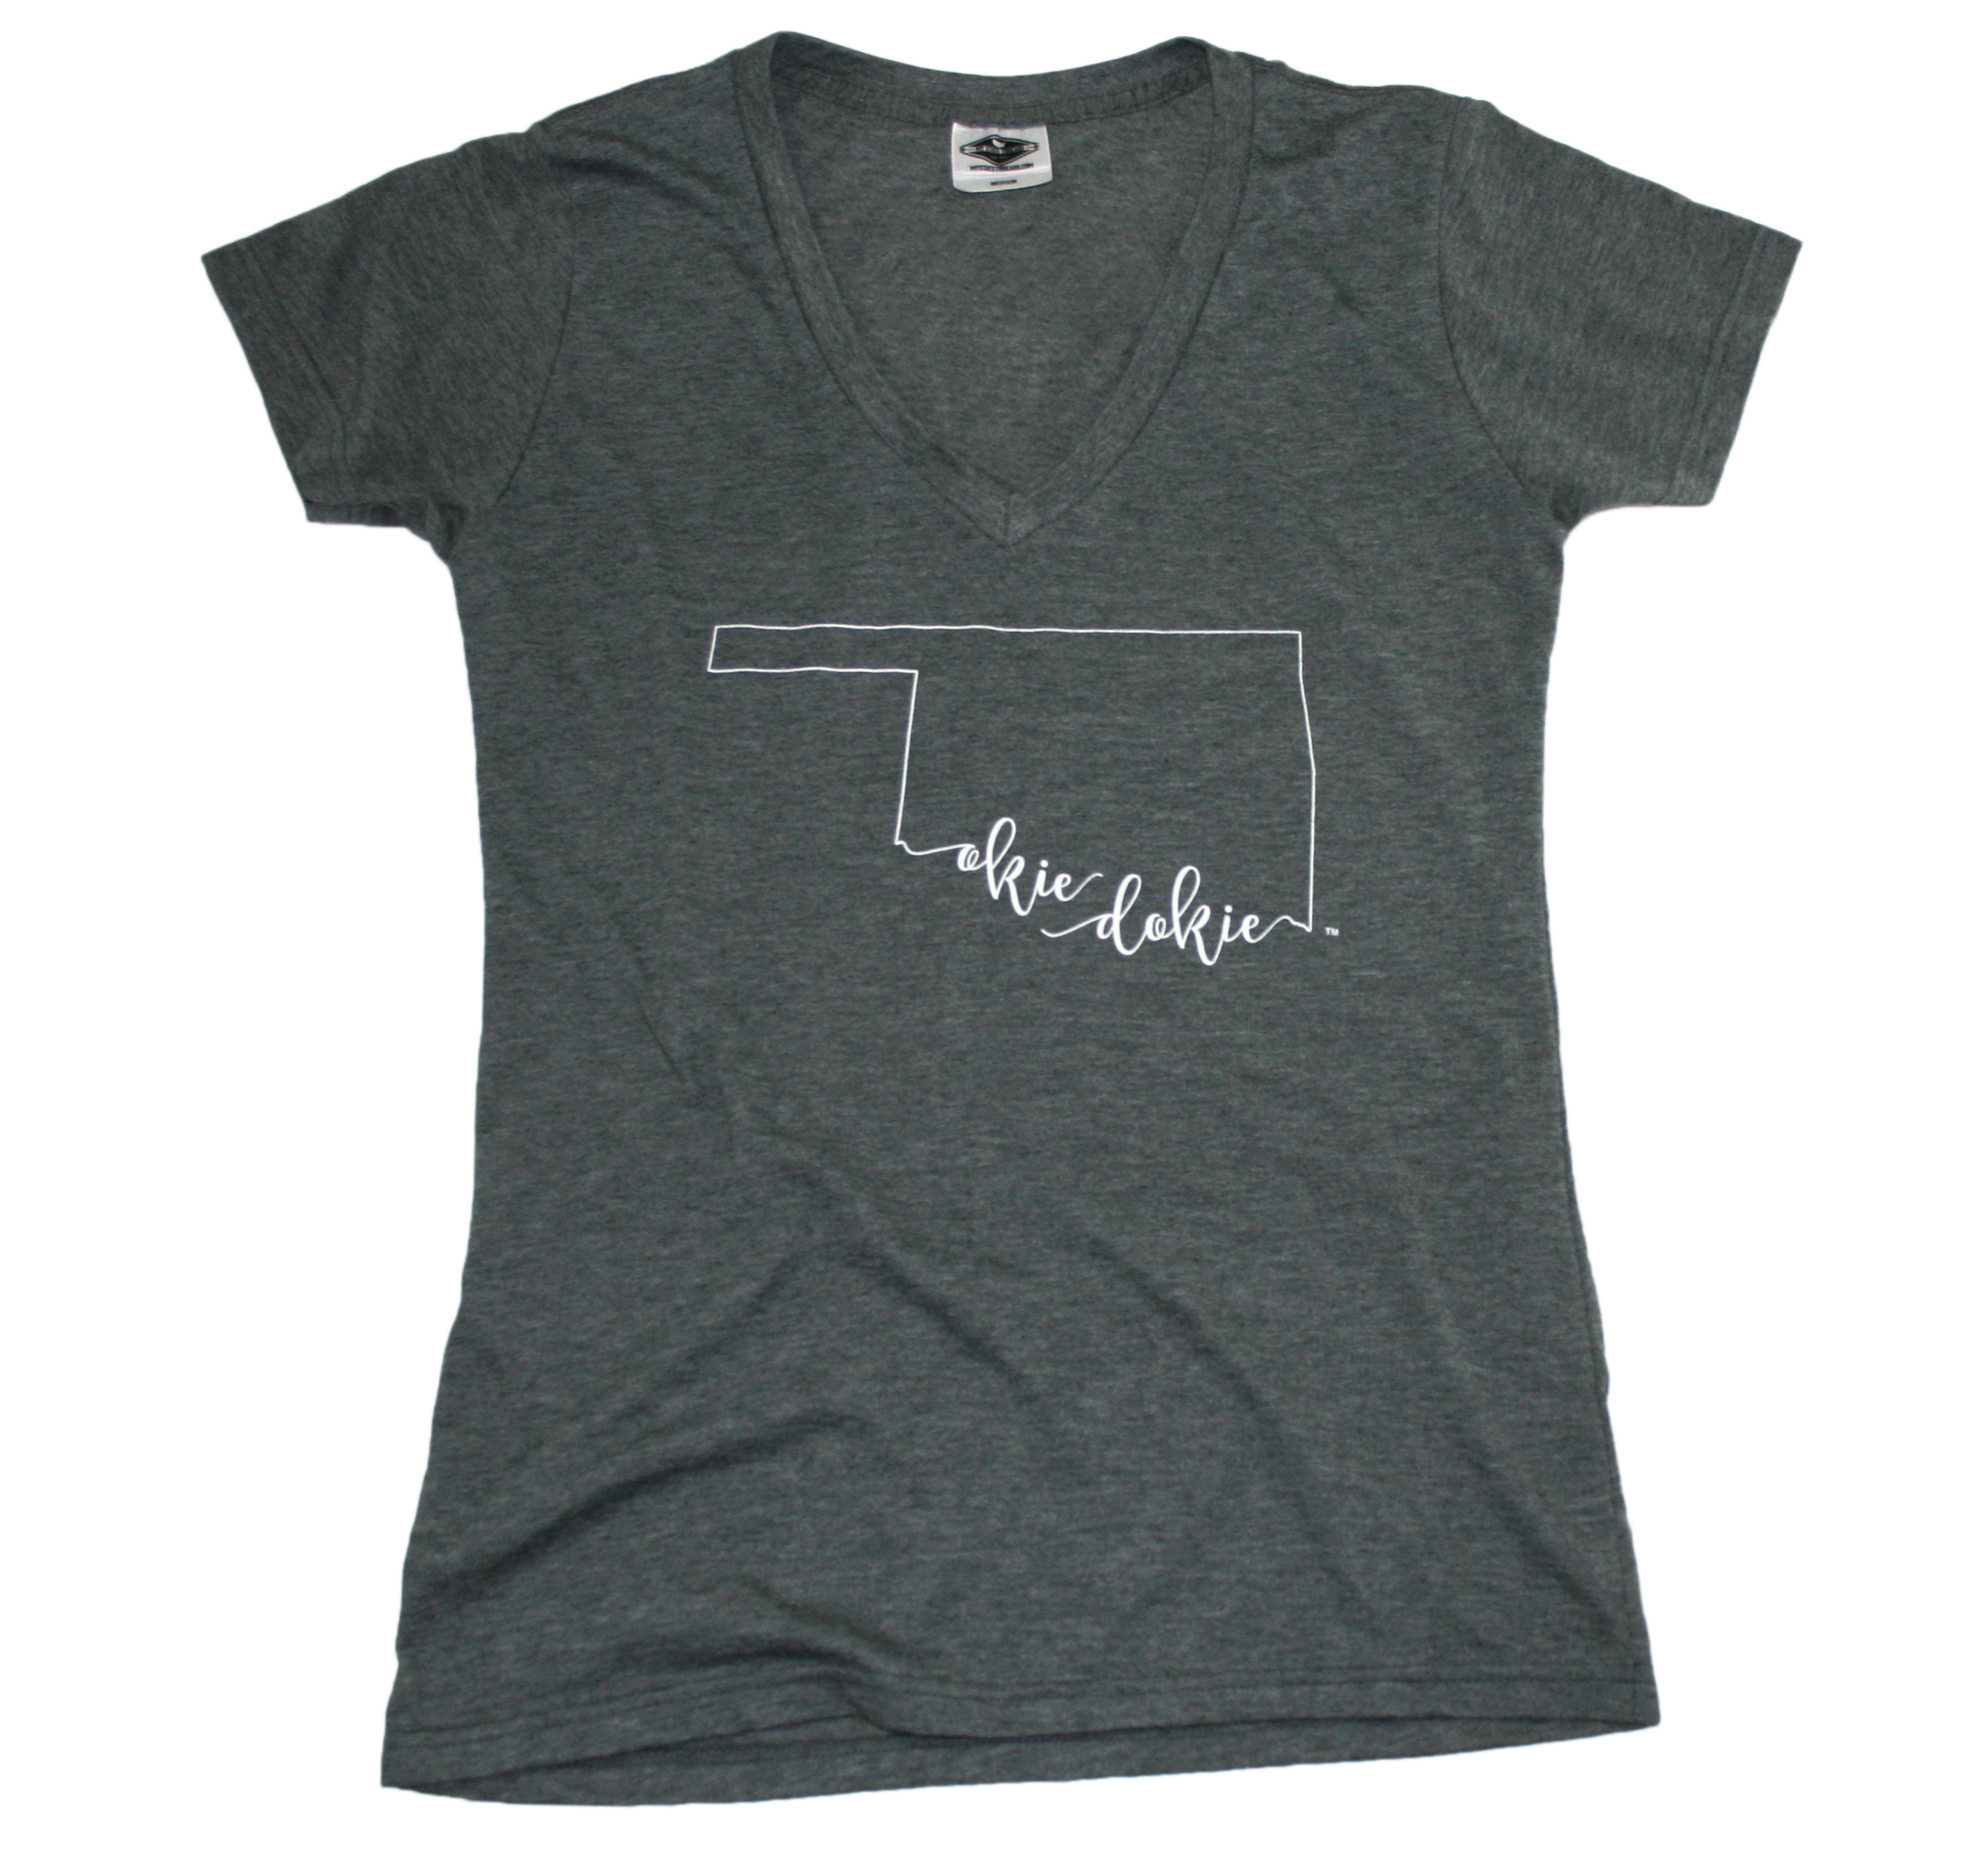 OKLAHOMA LADIES V-NECK TEE | CALLIGRAPHY OUTLINE | OKIE DOKIE